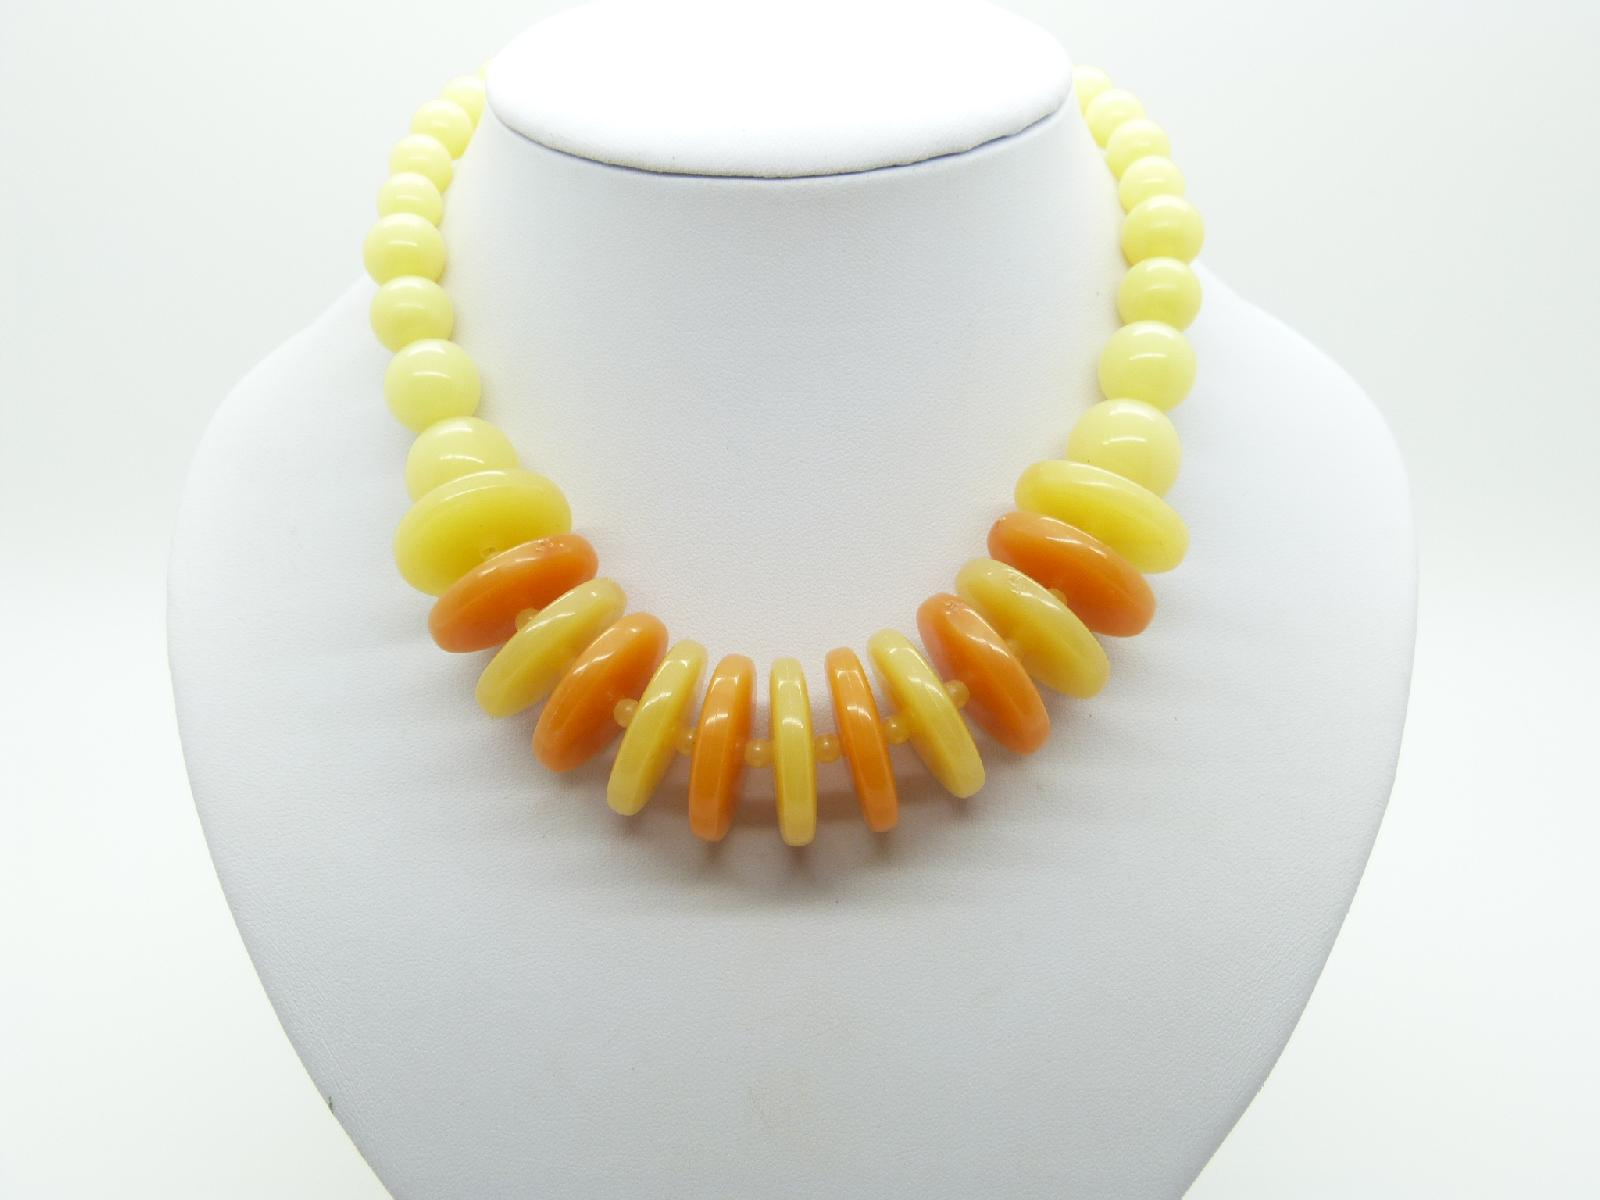 Vintage 60s Juicy Orange and Lemon Lucite Disc Bead Necklace Unique